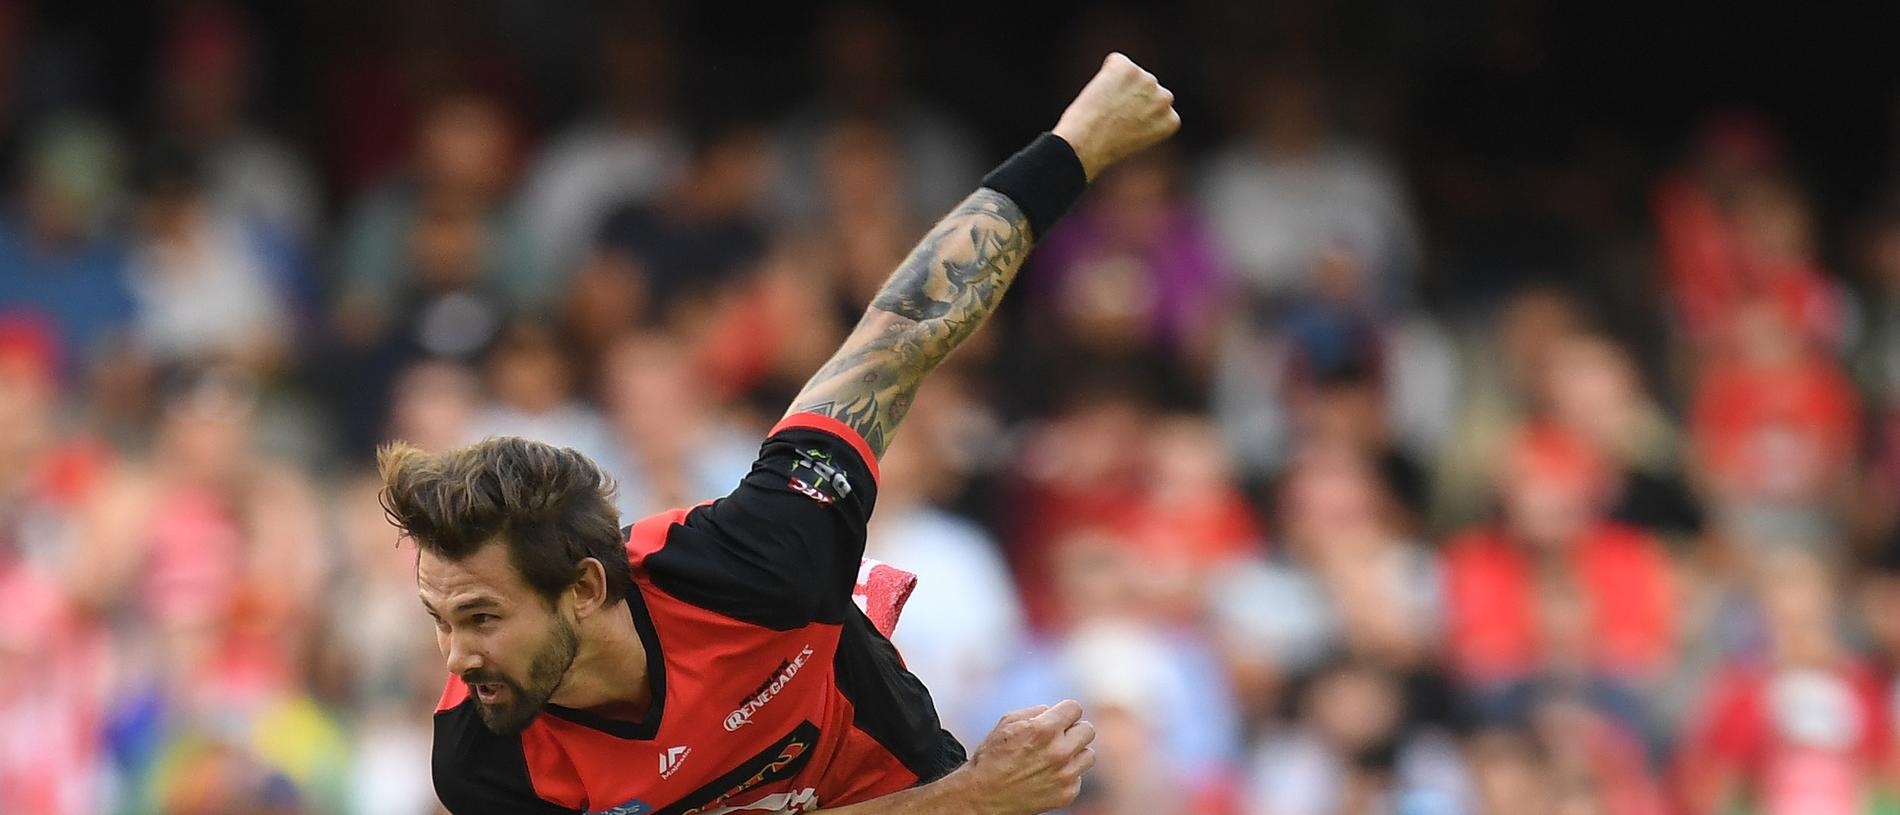 Kane Richardson of the Renegades bowls during the Big Bash League (BBL) match between the Melbourne Renegades and the Hobart Hurricanes at Marvel Stadium in Melbourne, Monday, January 7, 2019. (AAP Image/Julian Smith) NO ARCHIVING, EDITORIAL USE ONLY, IMAGES TO BE USED FOR NEWS REPORTING PURPOSES ONLY, NO COMMERCIAL USE WHATSOEVER, NO USE IN BOOKS WITHOUT PRIOR WRITTEN CONSENT FROM AAP